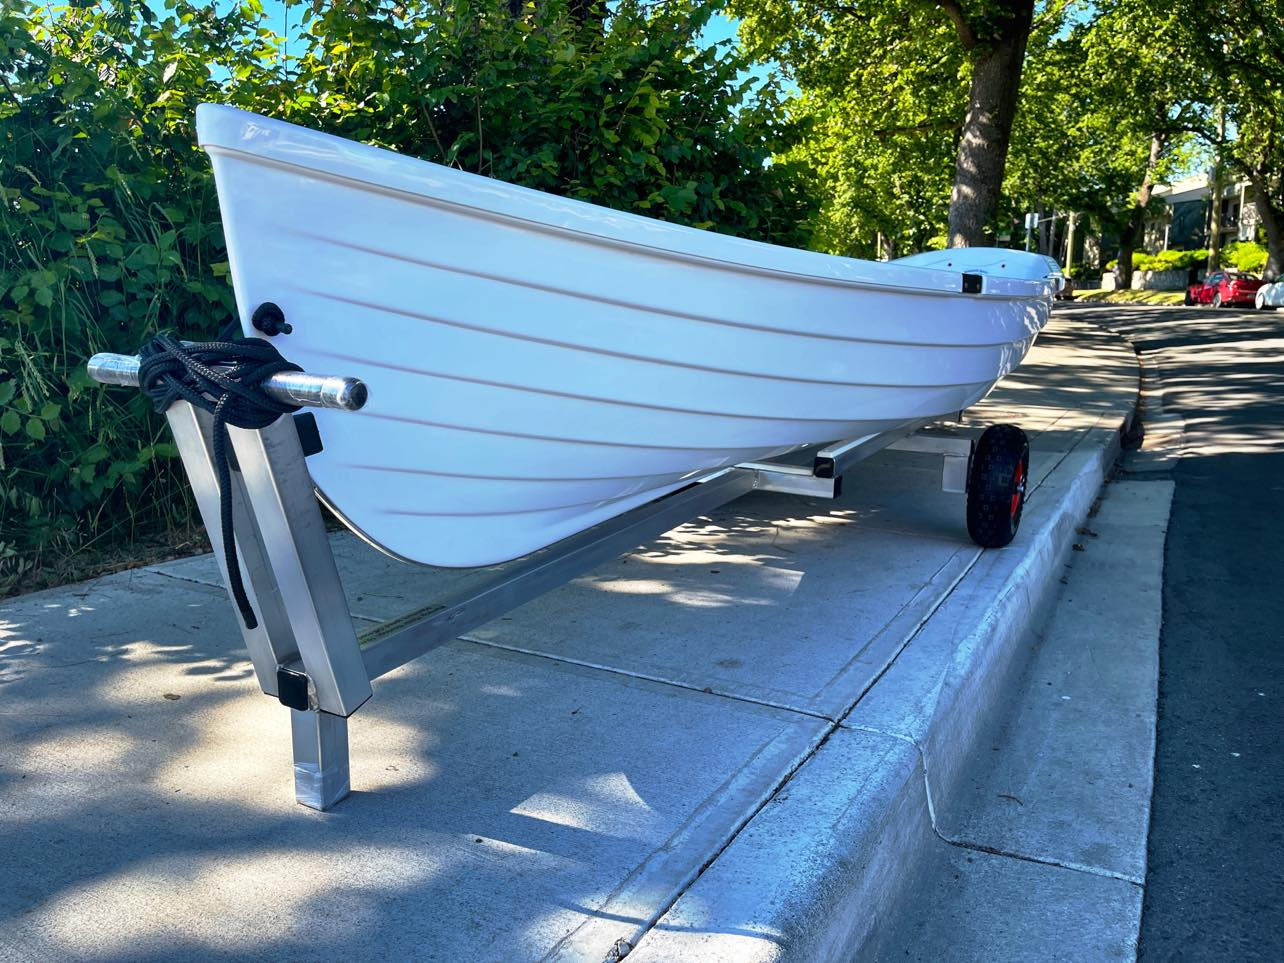 Whitehall-Rowing-and-Sail-Boat-Handling-Gear-Dolly